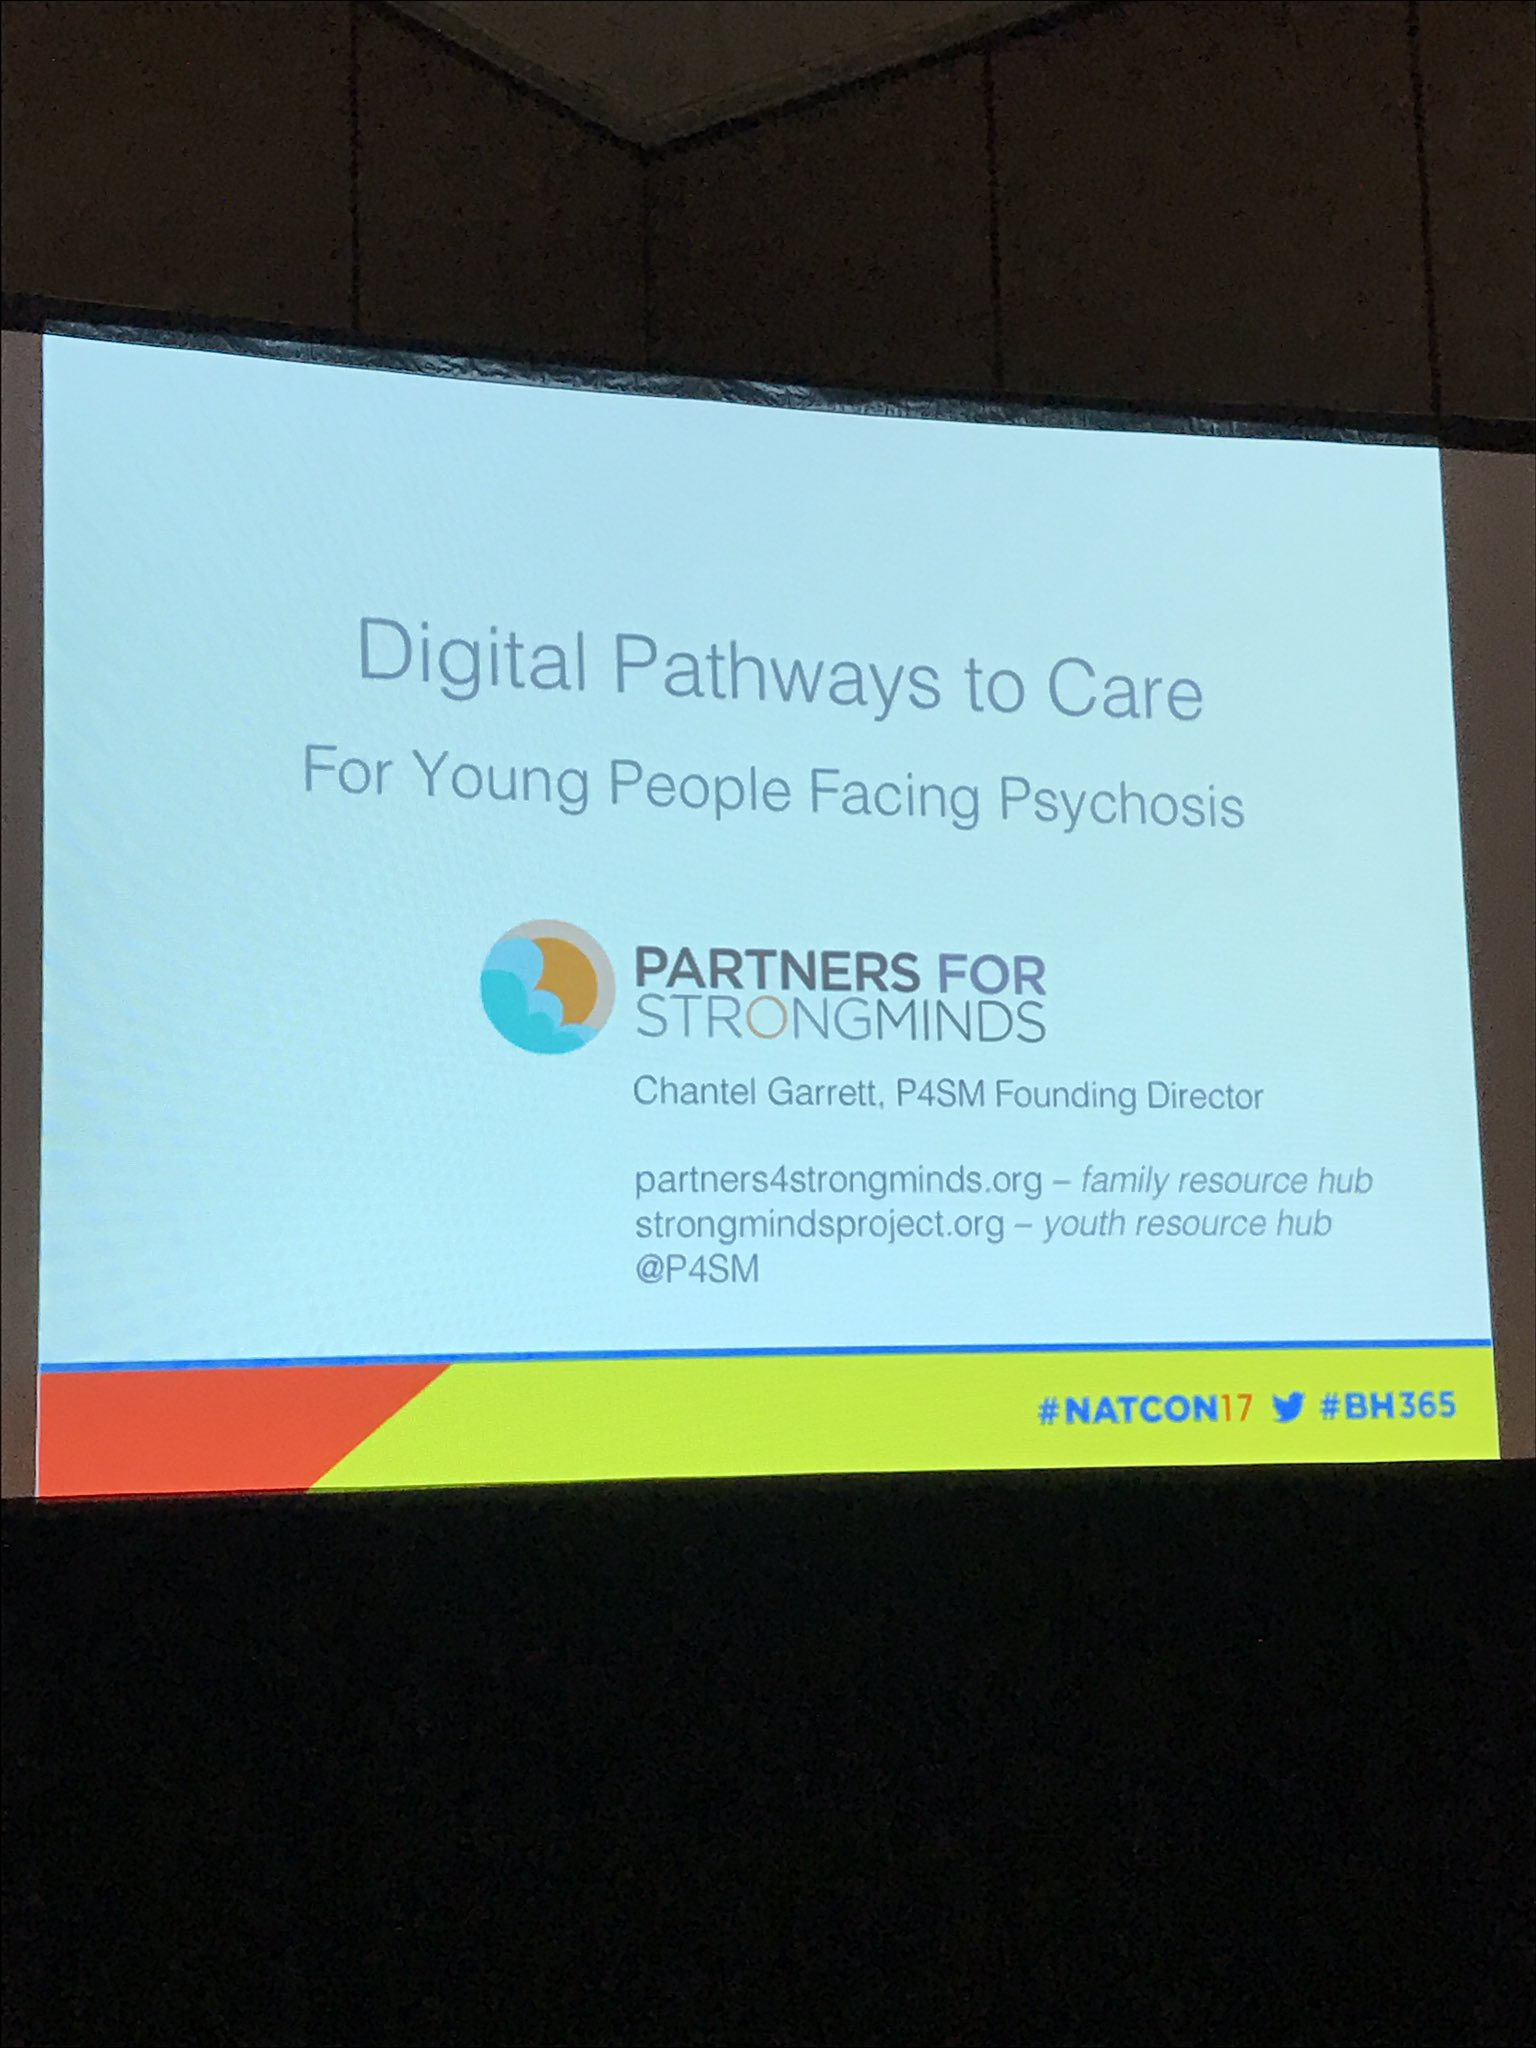 Now hearing from @P4SM about digital tools for First Episode Psychosis ... #NatCon17 https://t.co/2Jhc5st12T